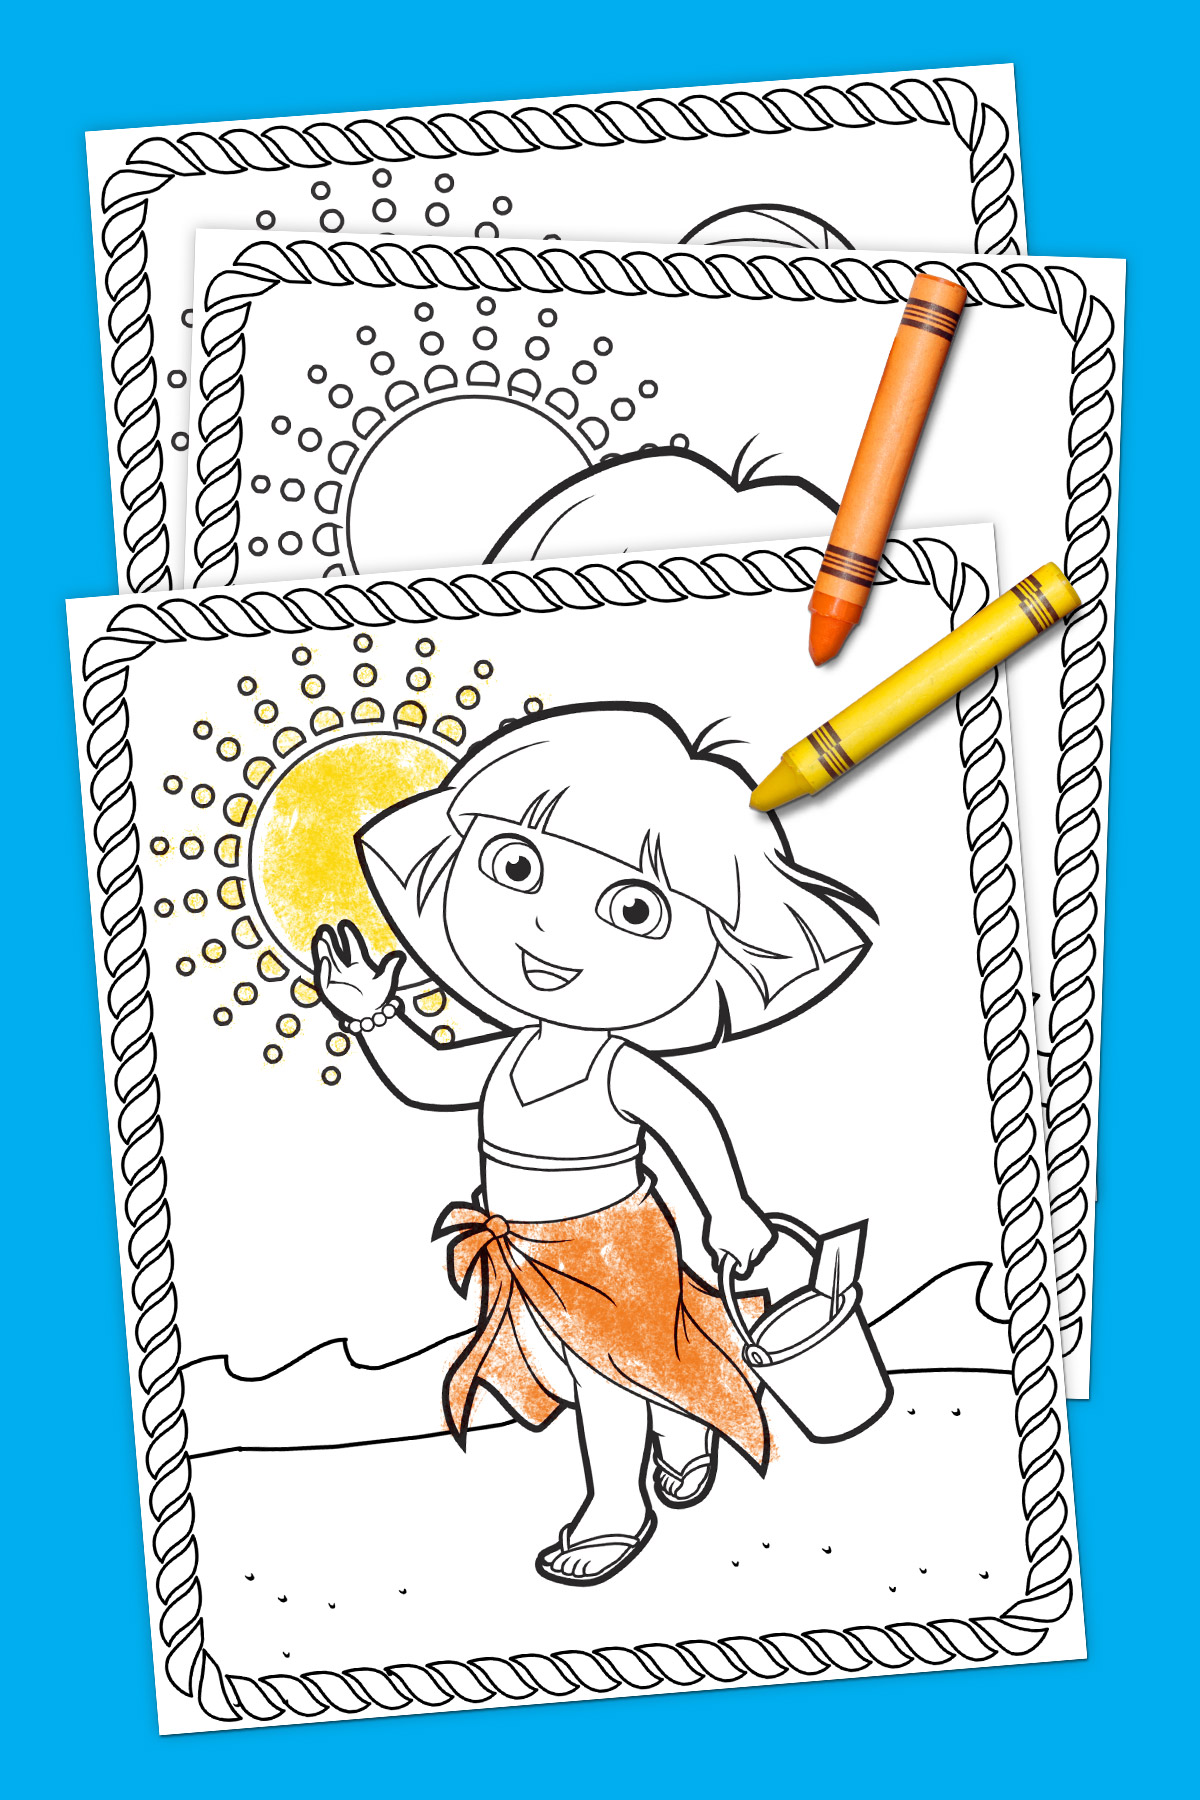 Nick jr summer coloring pages - Savesave To Pinterest Dora Summer Coloring Pack